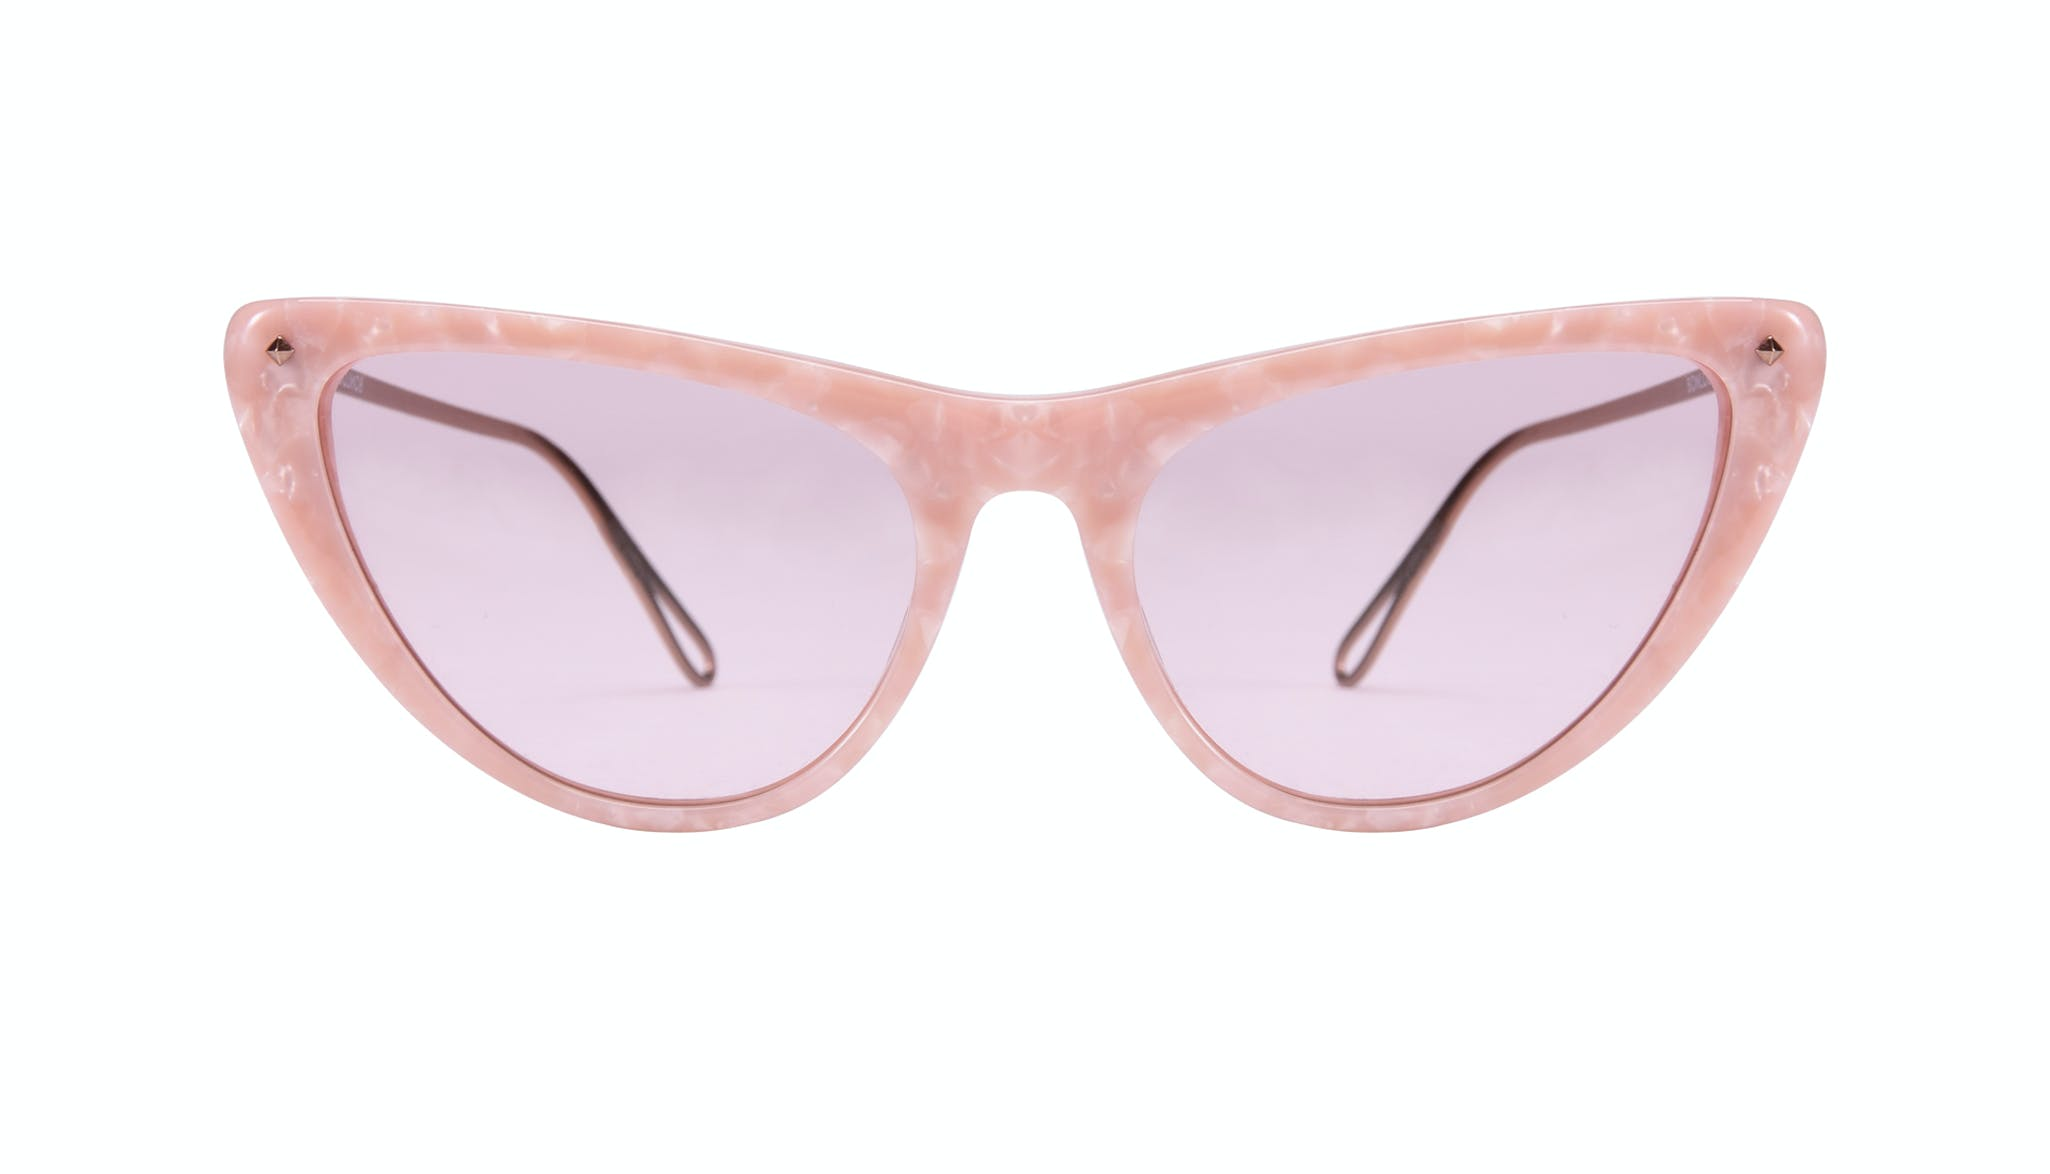 Affordable Fashion Glasses Cat Eye Sunglasses Women Celeste Rose Front